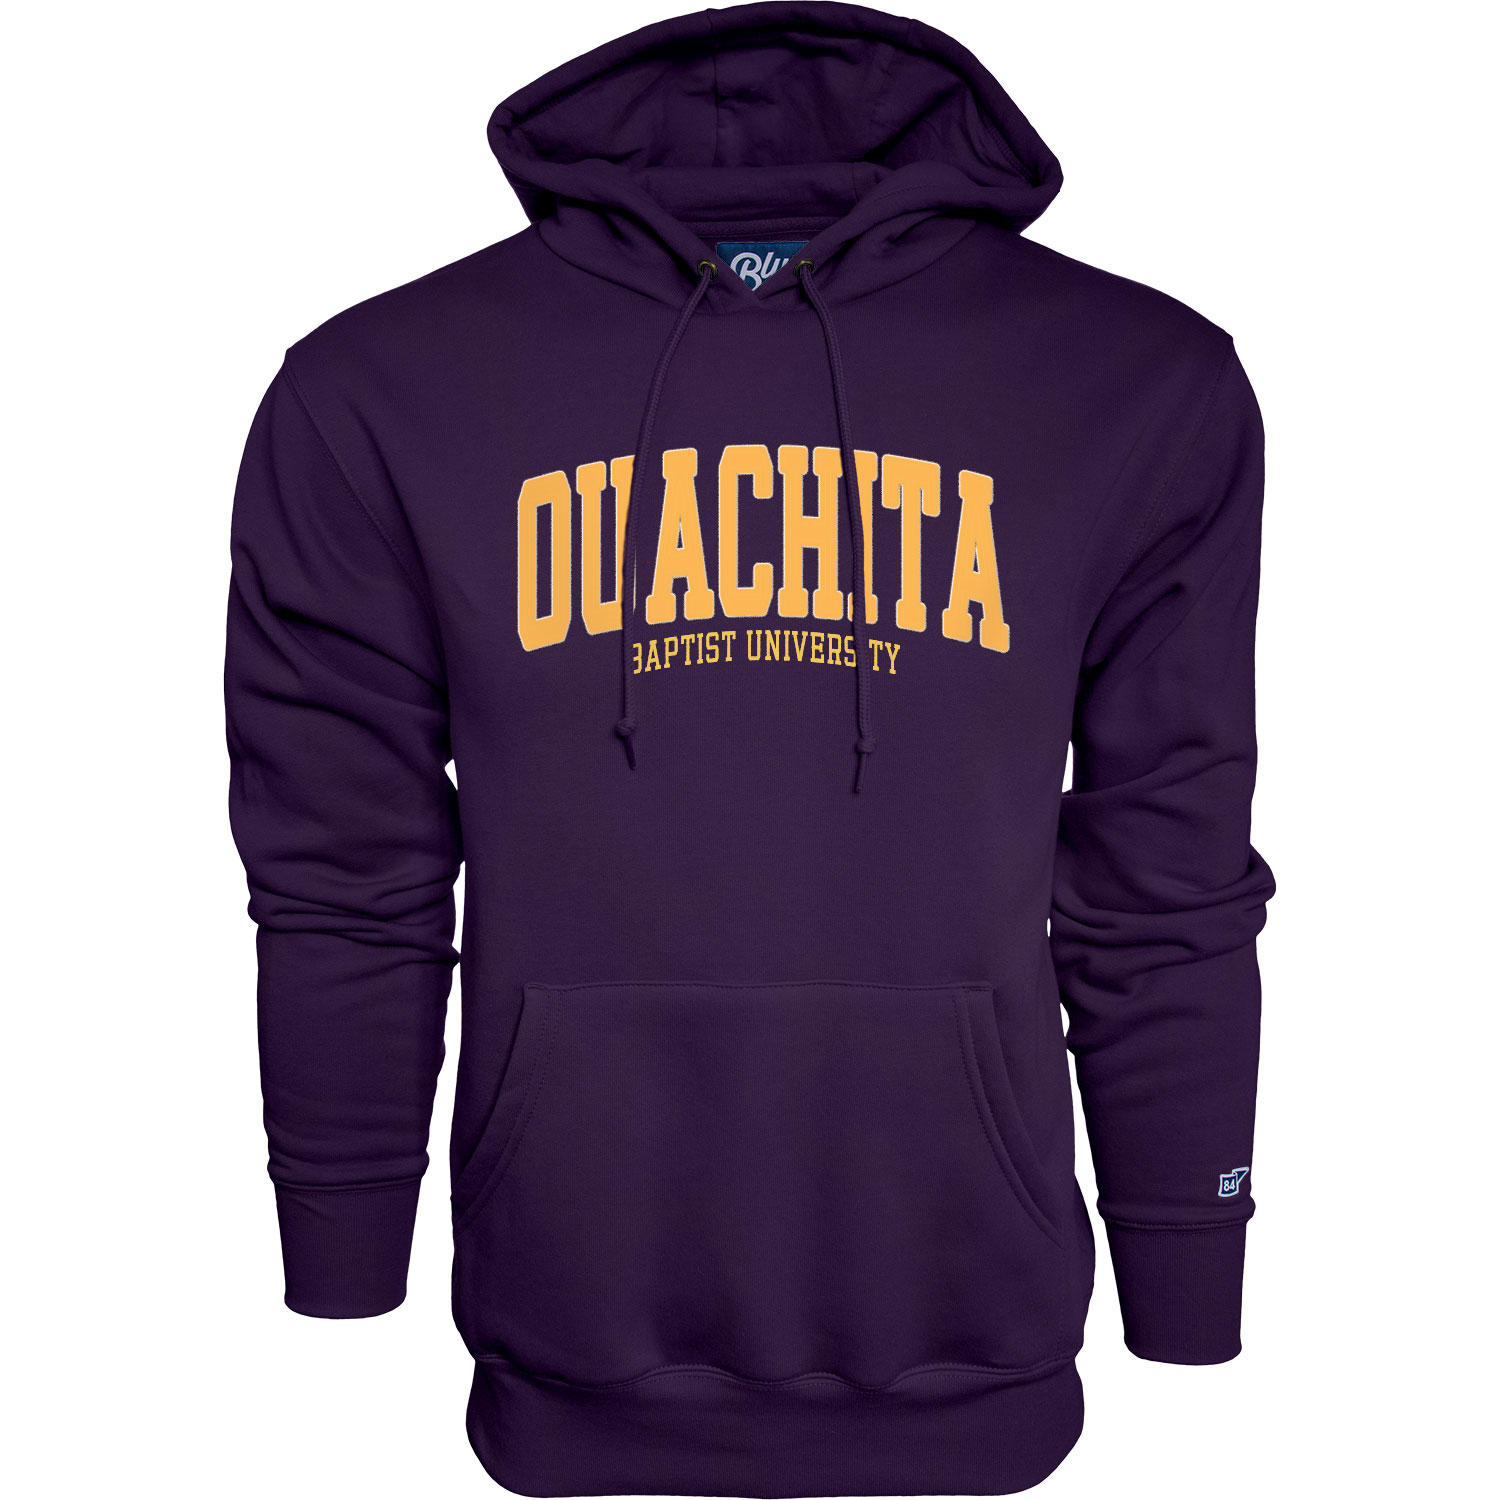 OUACHITA BAPTIST UNIVERSITY TWILL LETTERED HOODY